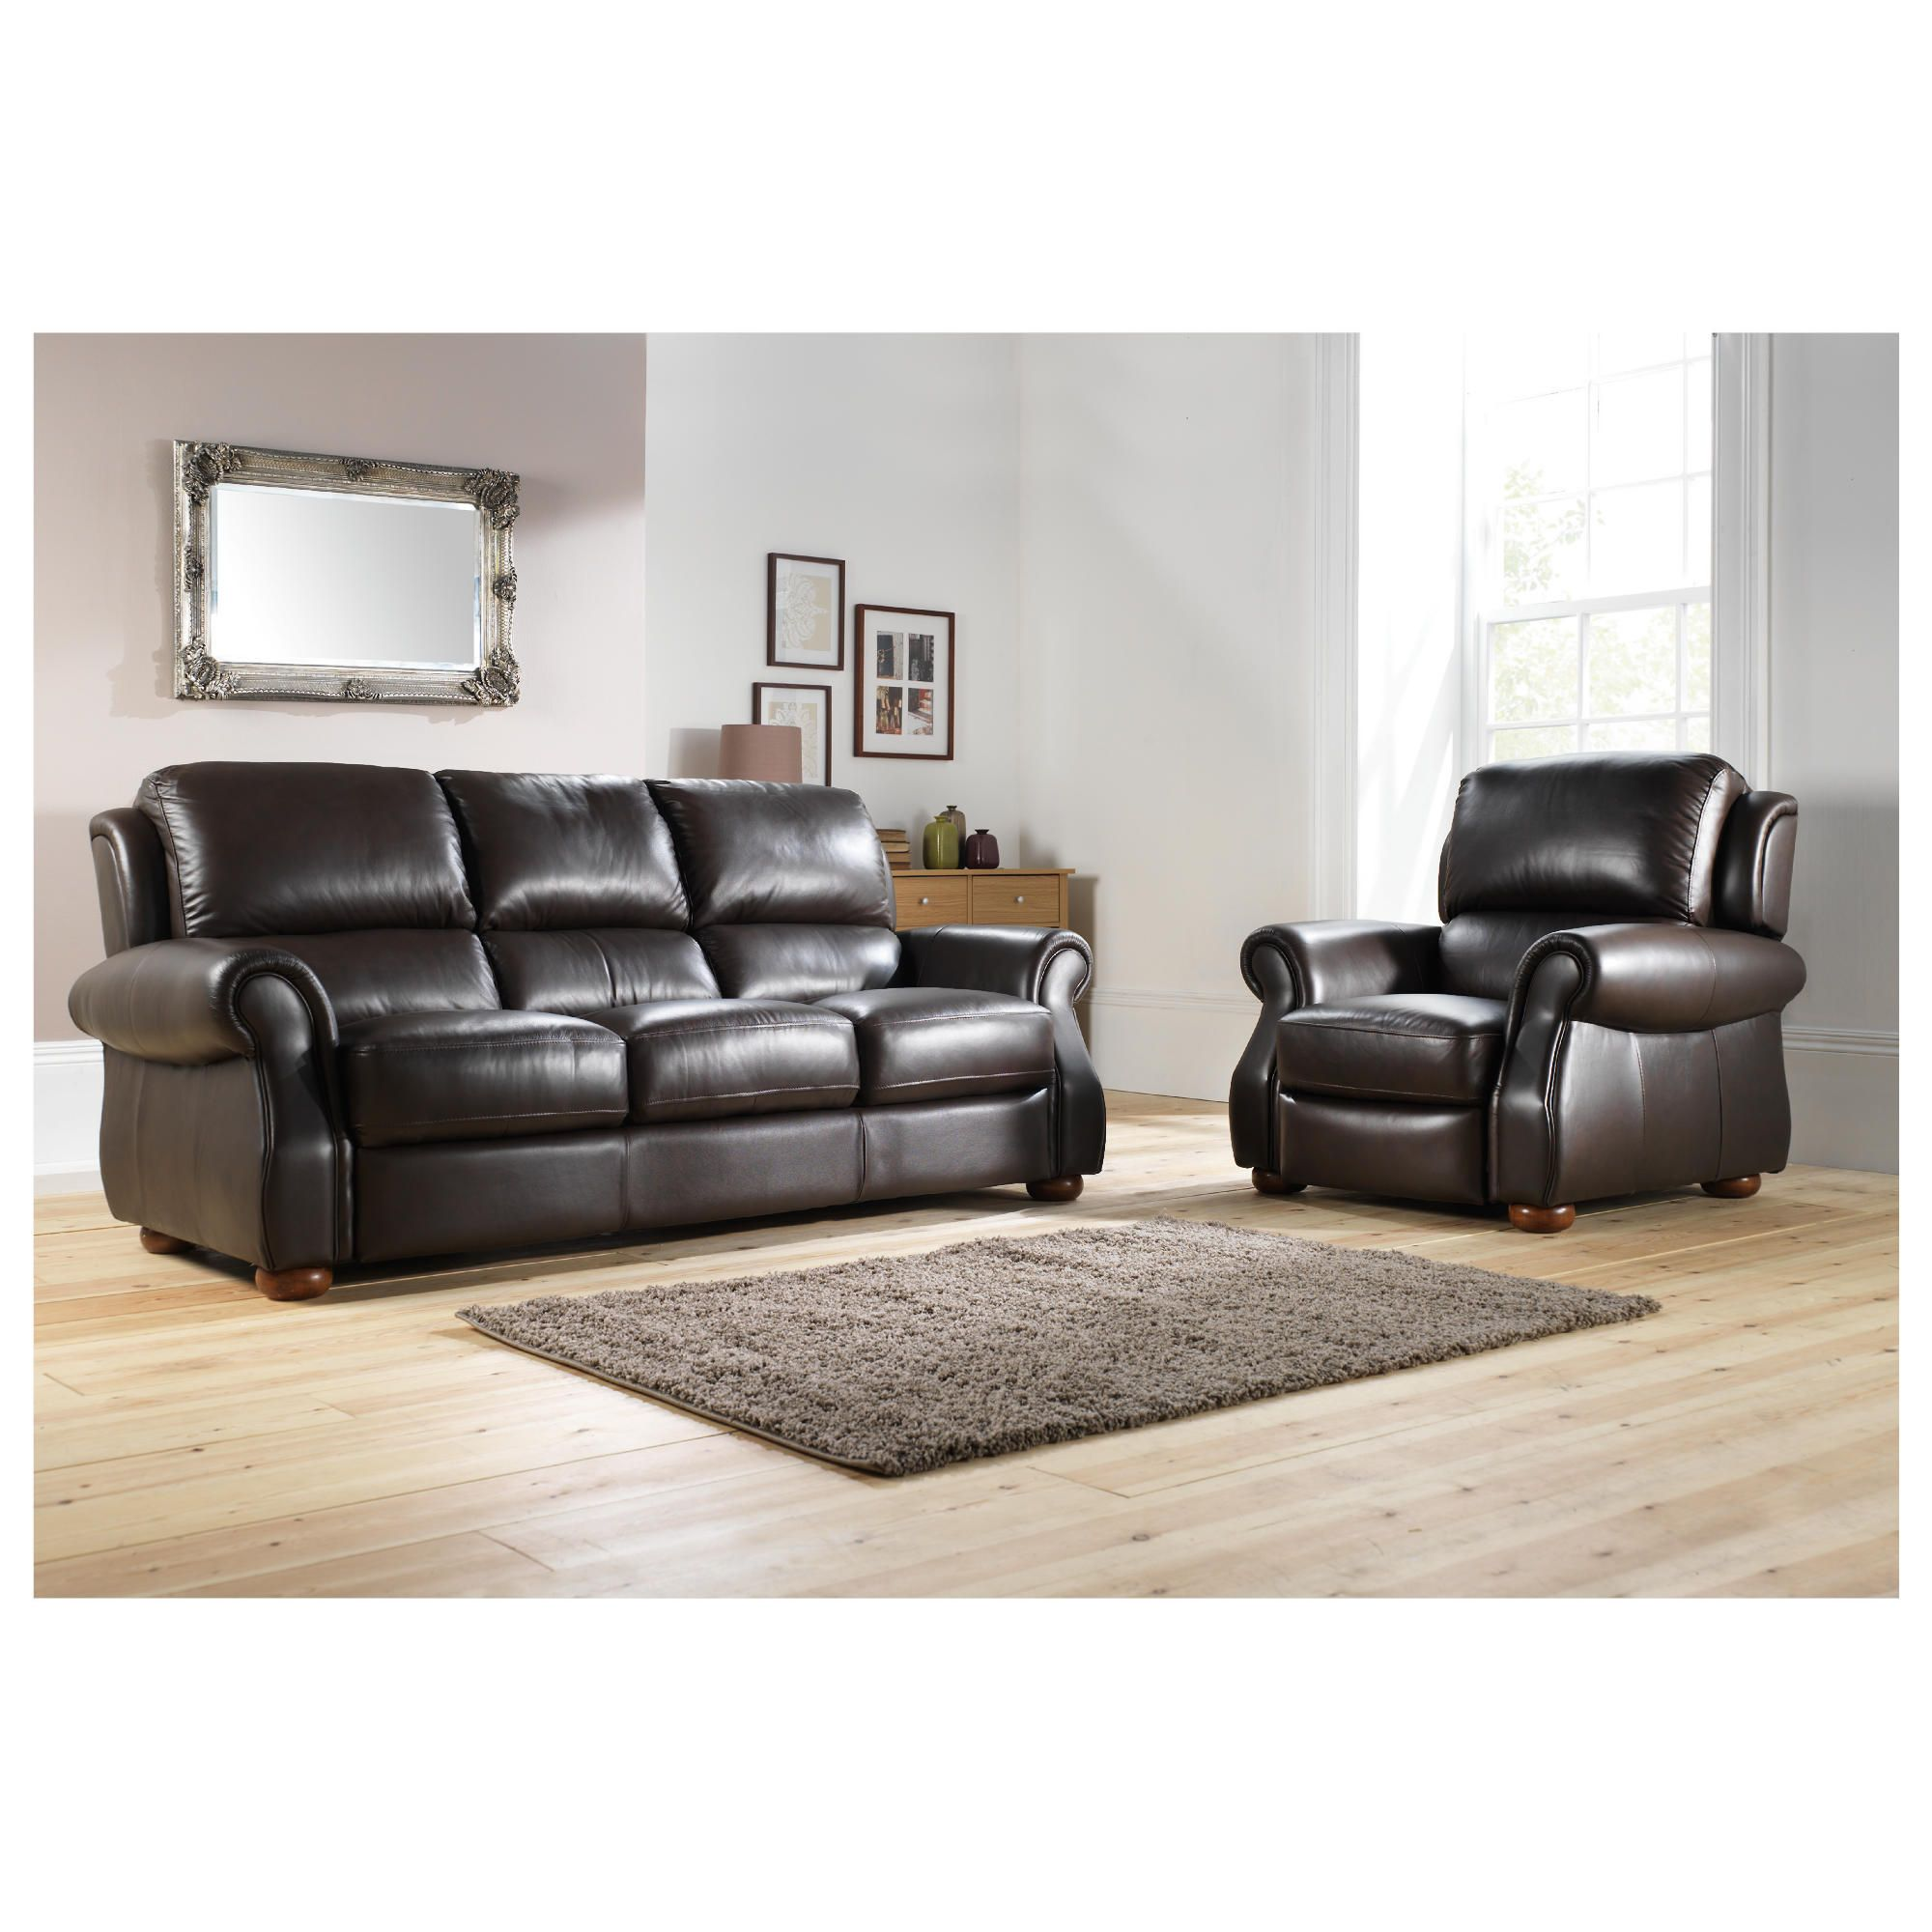 Leather sofas corner sofas sofa beds chesterfield for Paloma leather sofa